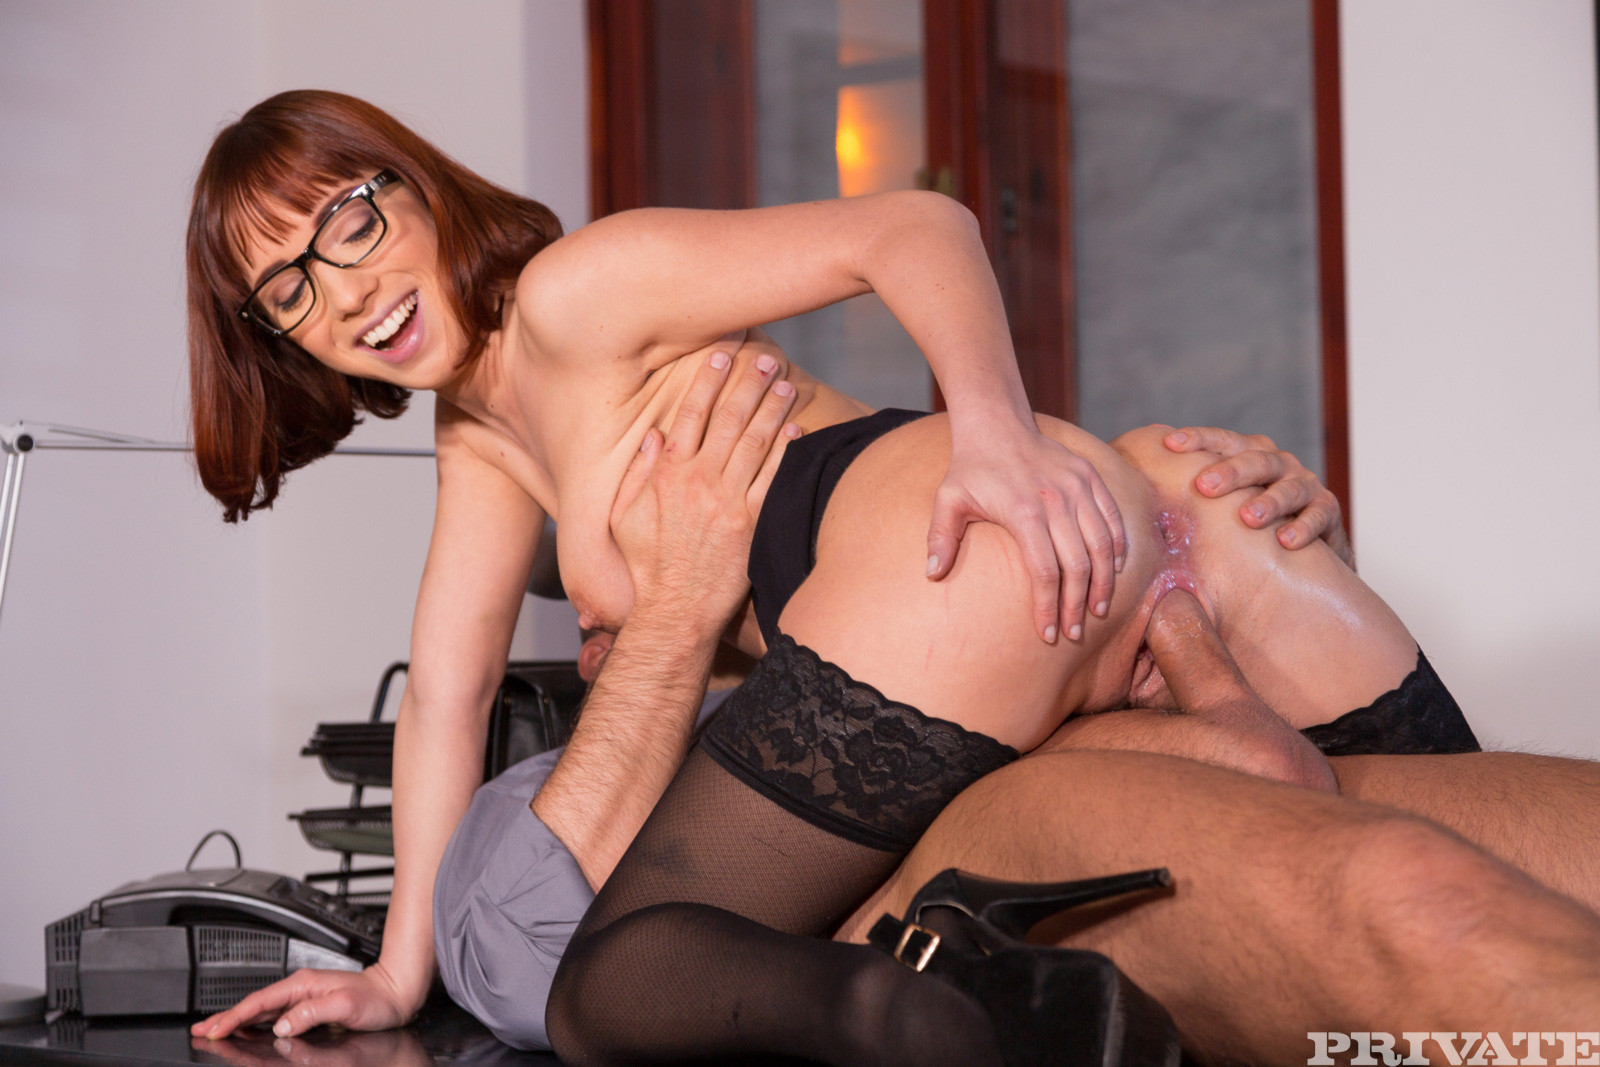 Secretary Wearing Stockings And A Garter Belt Getting Fucked On A Couch